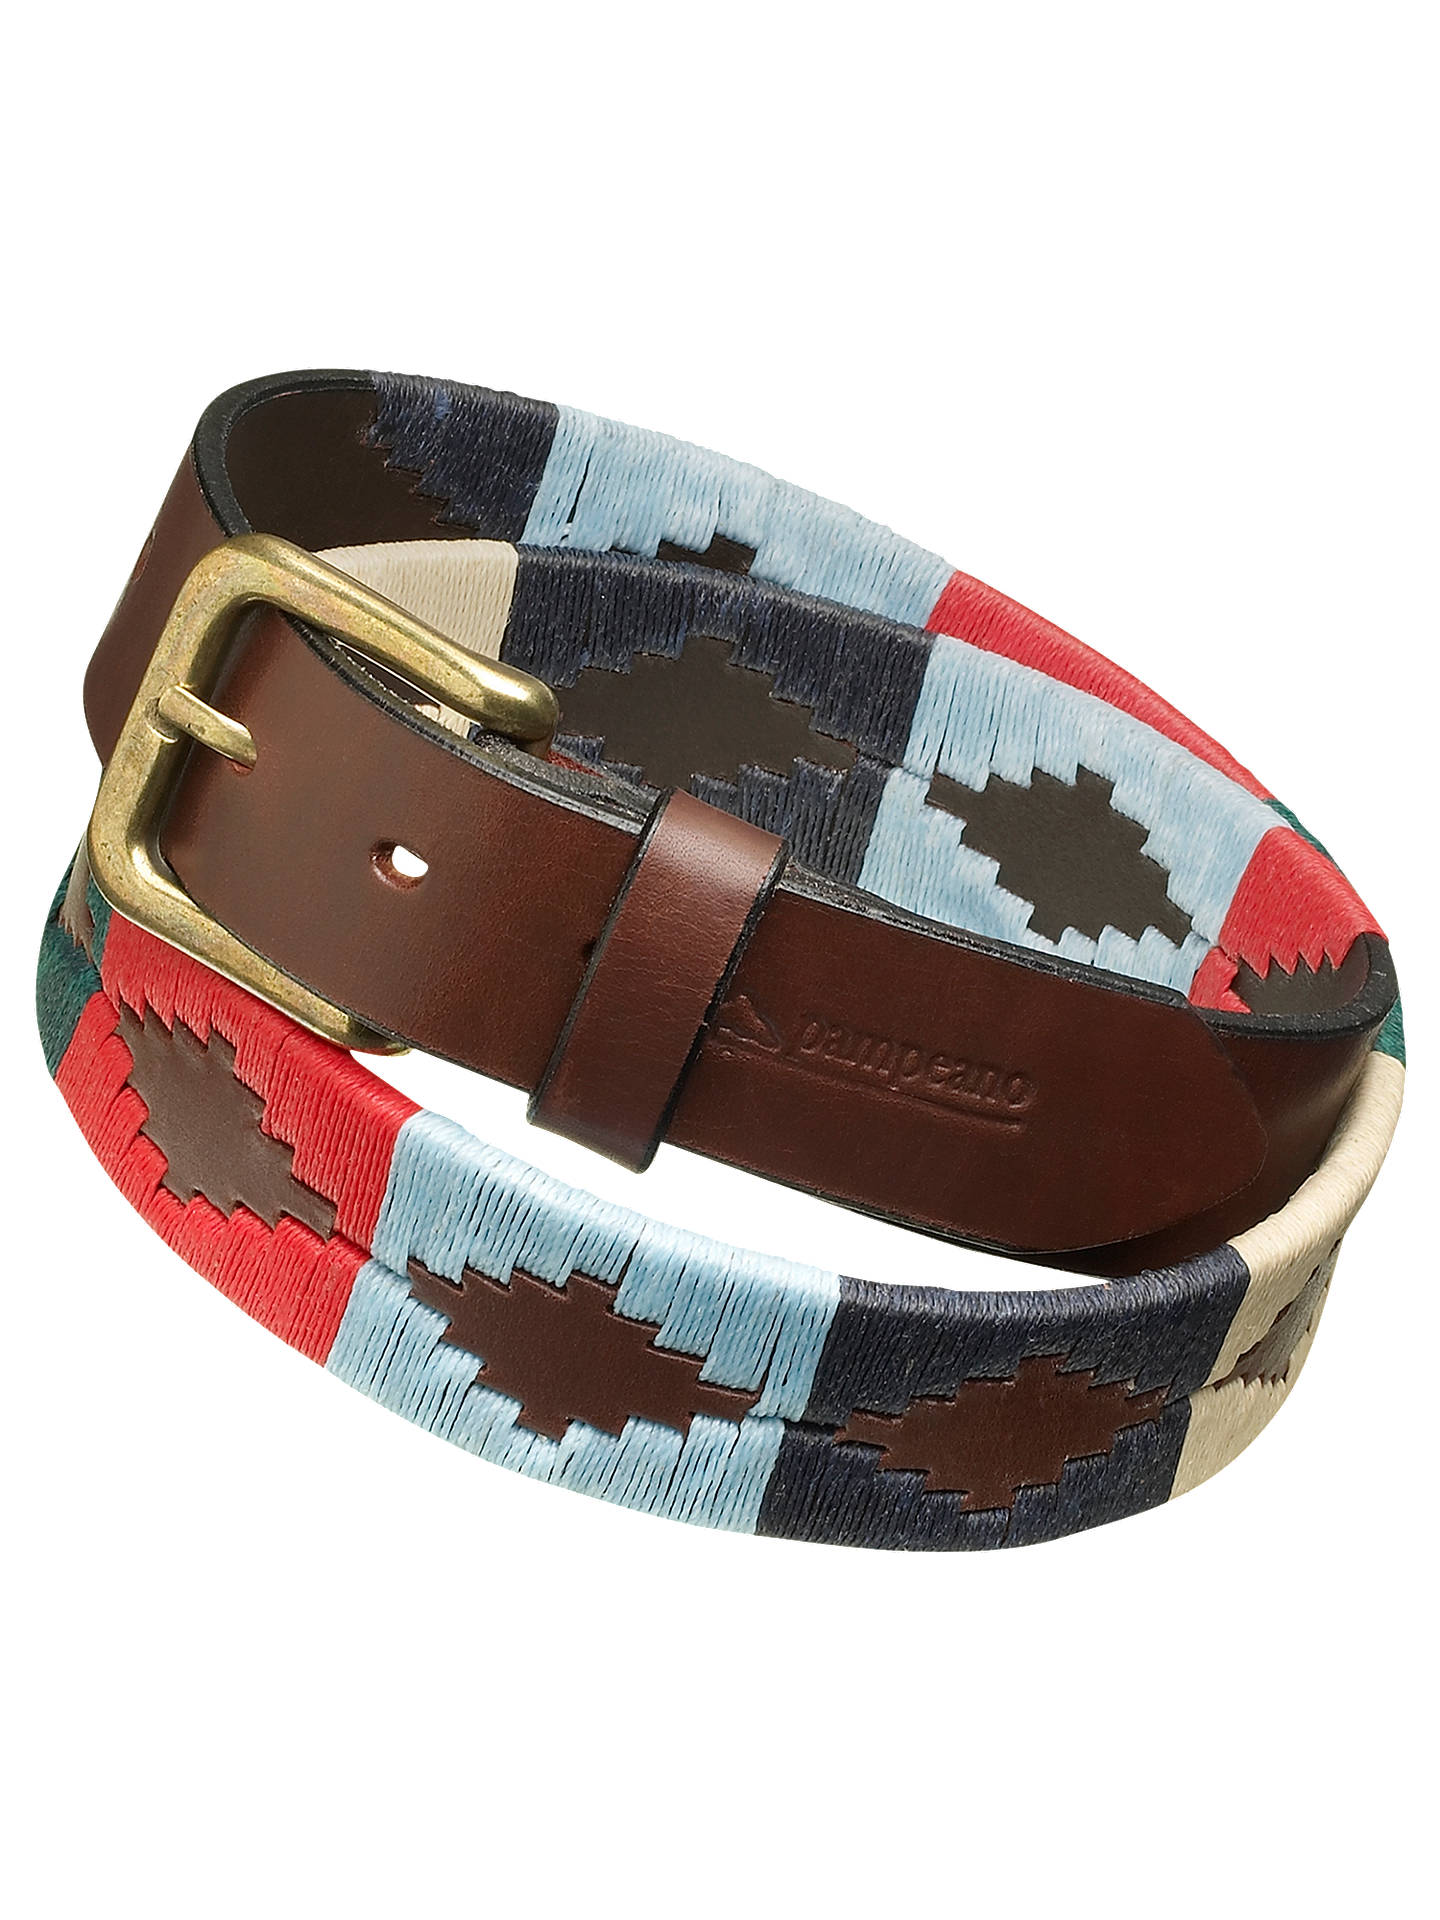 Buy pampeano Polo Leather Belt, Multi, S Online at johnlewis.com